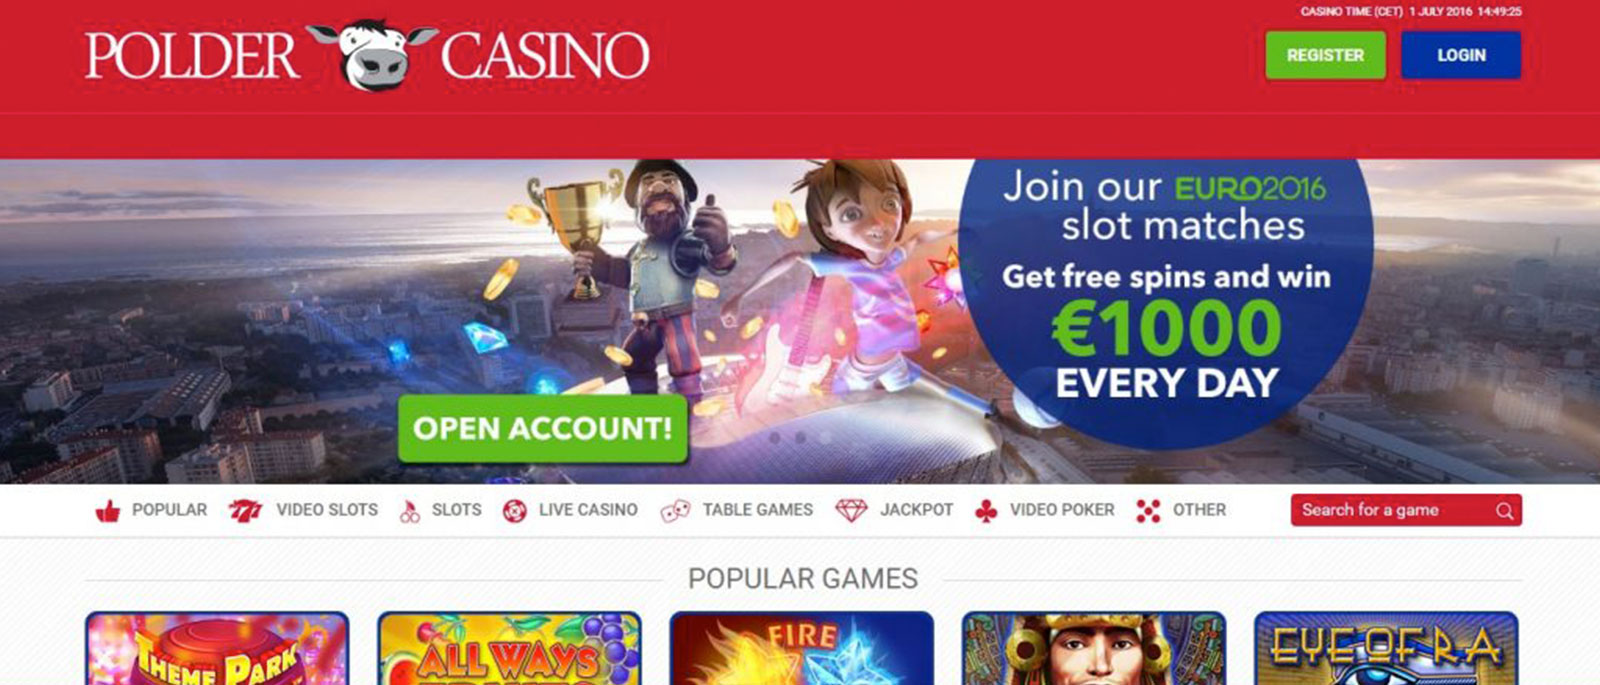 polder casino review